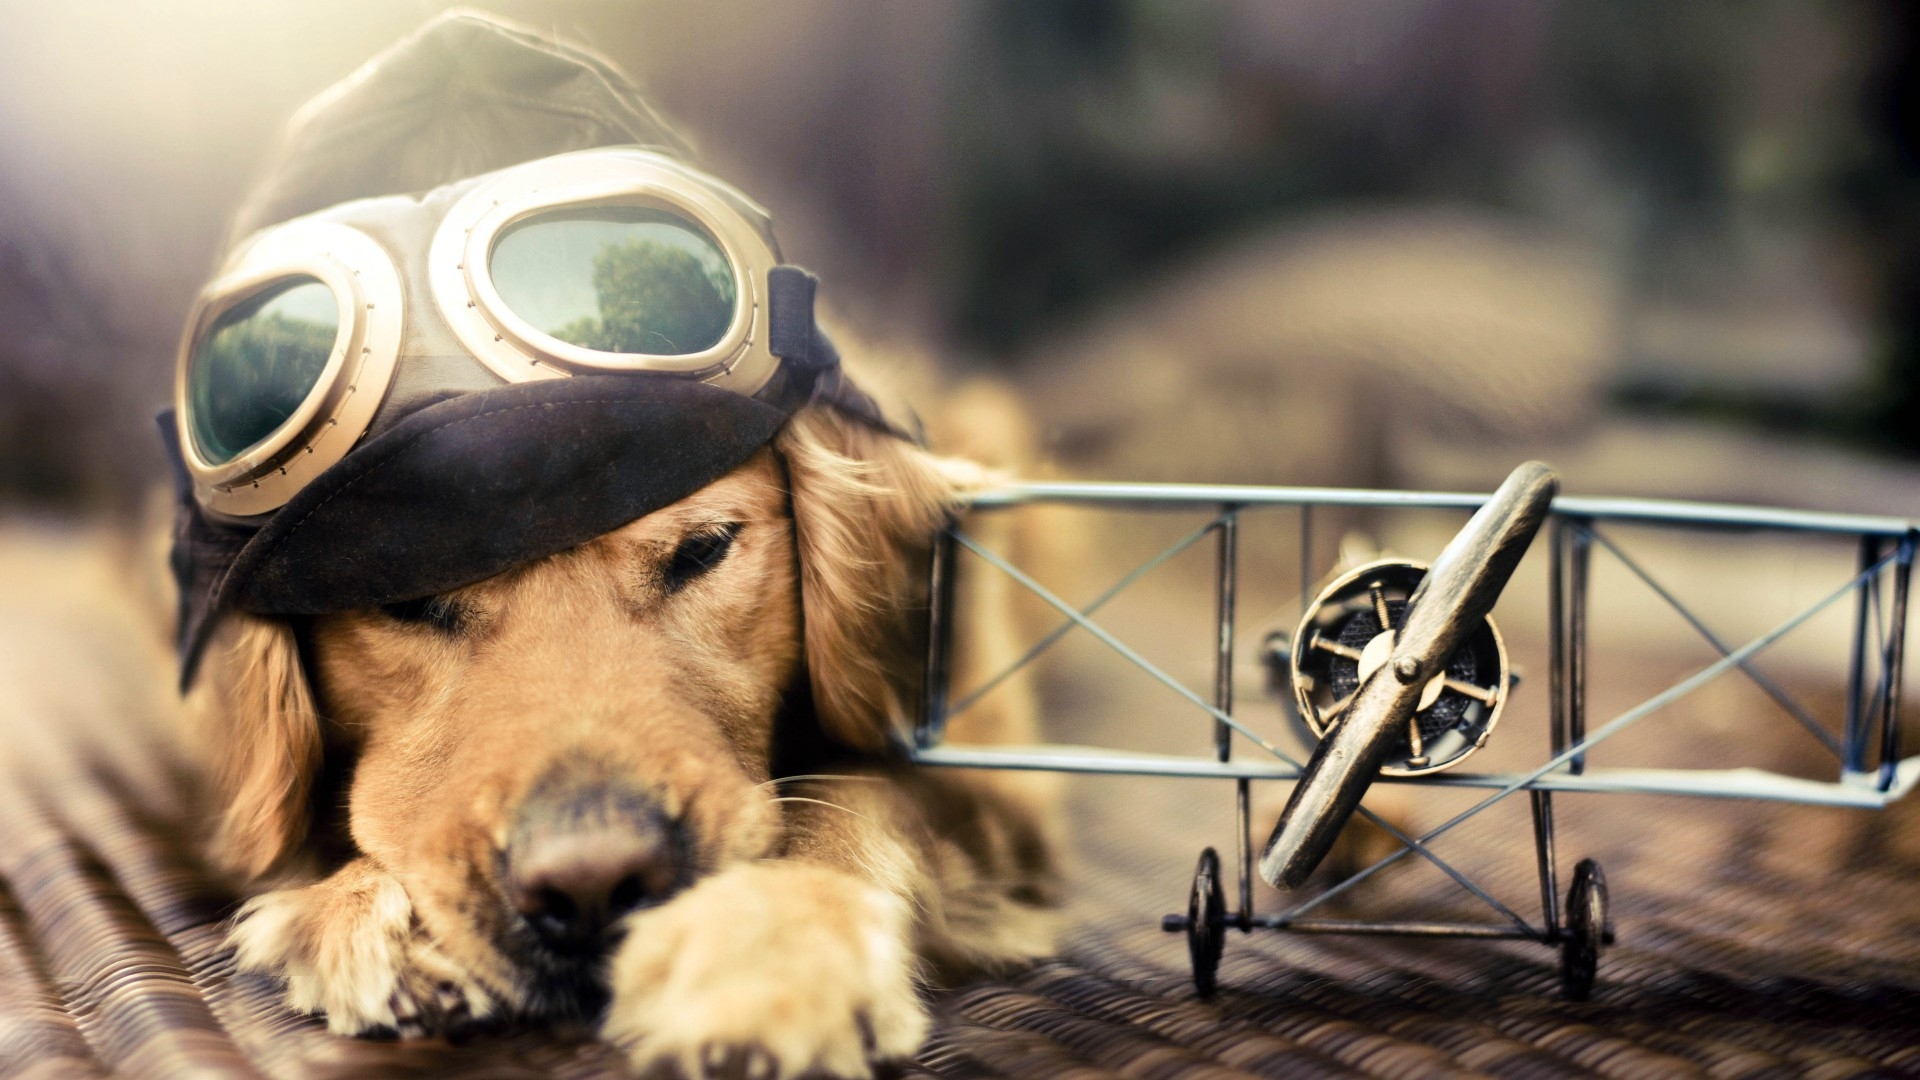 Puppy, Dog, plane, glasses, pet (horizontal)